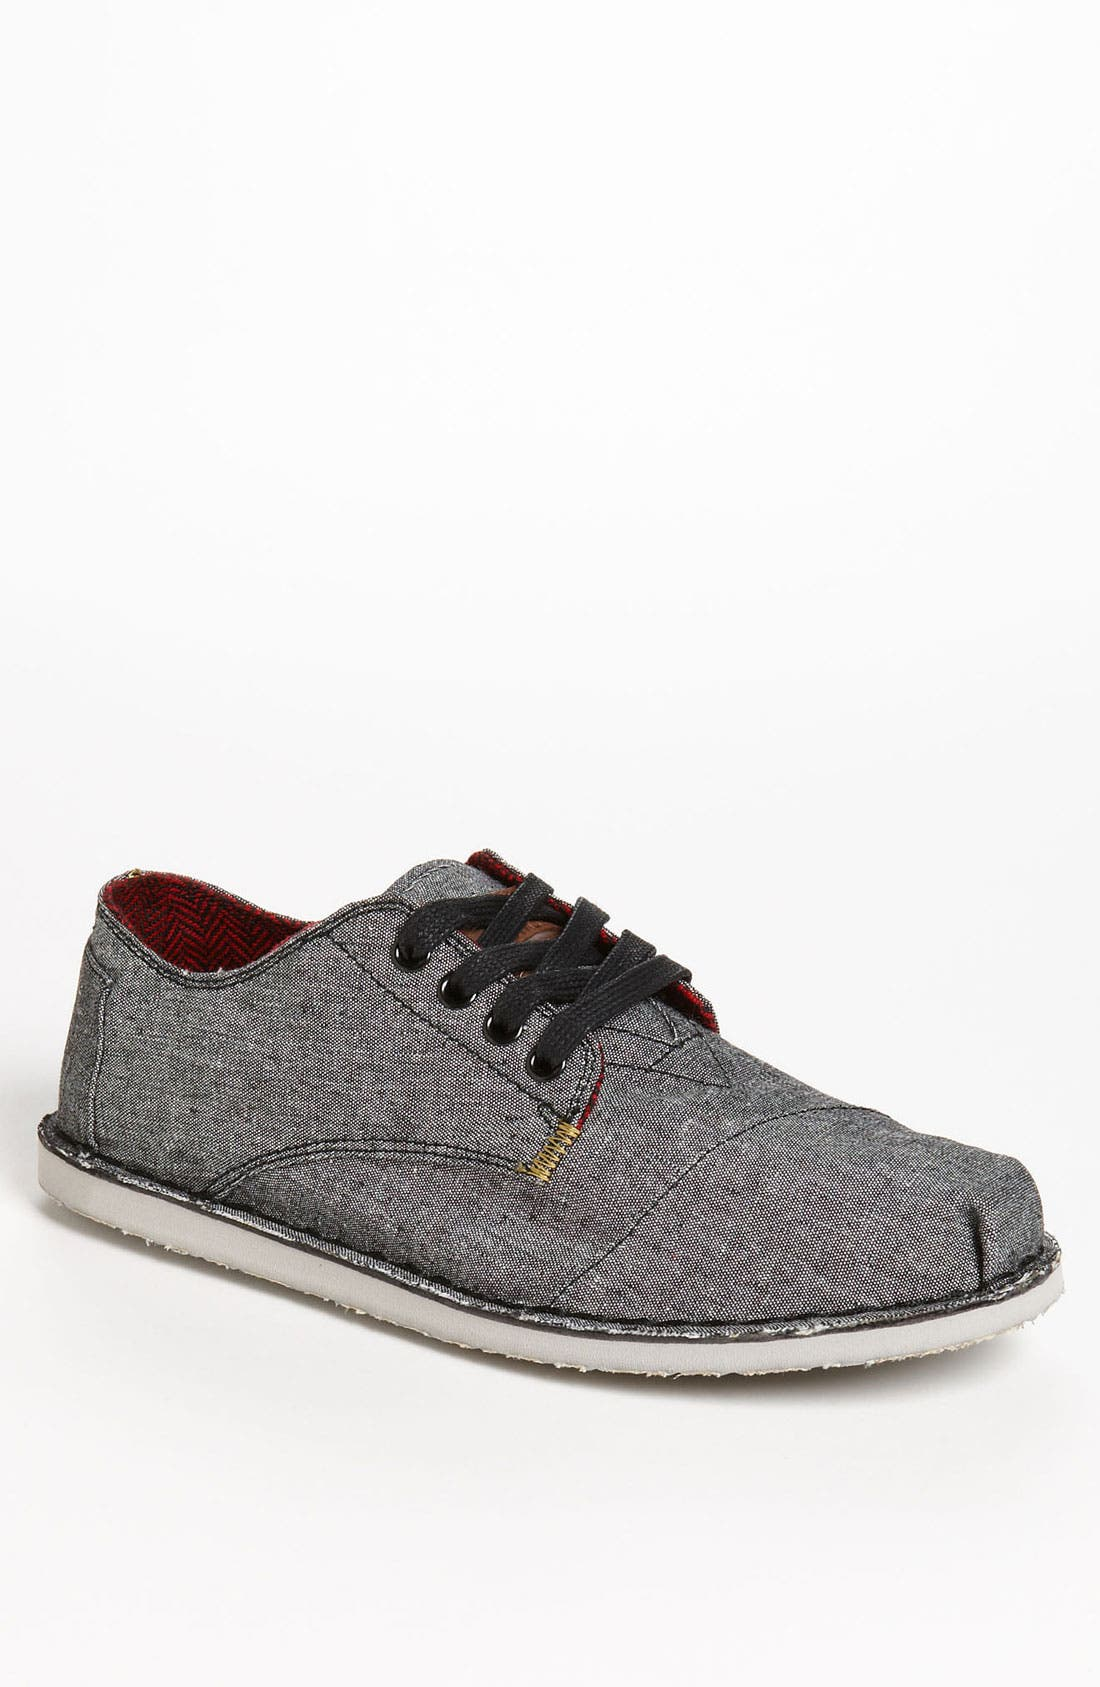 Main Image - TOMS 'Desert' Chambray Oxford (Men)